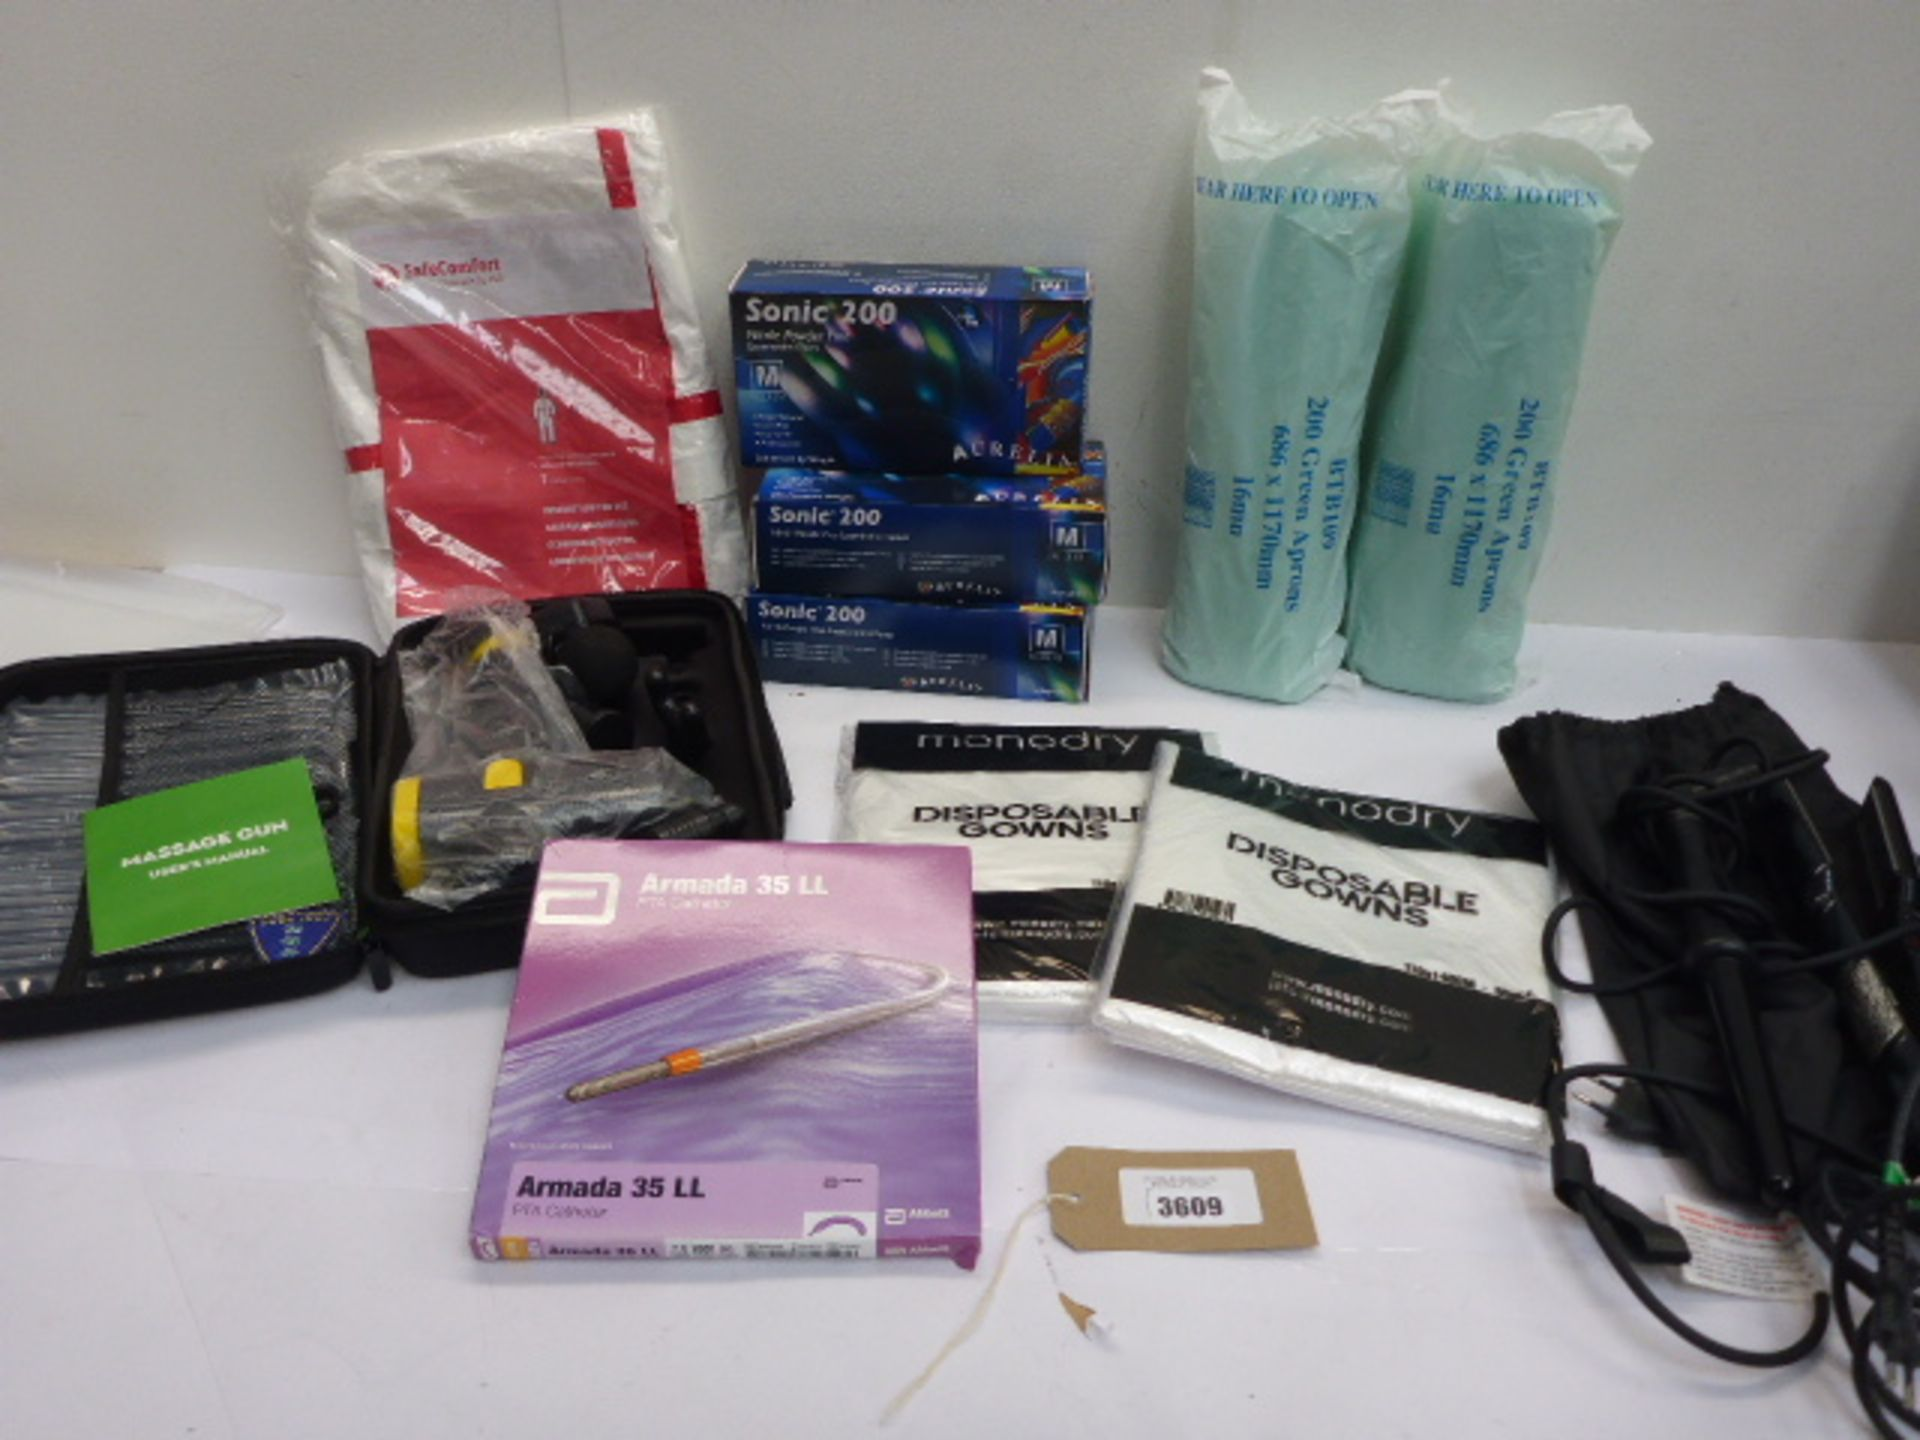 Lot 3609 - Armada 35LL catheter, 2 x 200 green aprons, 3 packs of Sonic 200 examination gloves, massage gun,